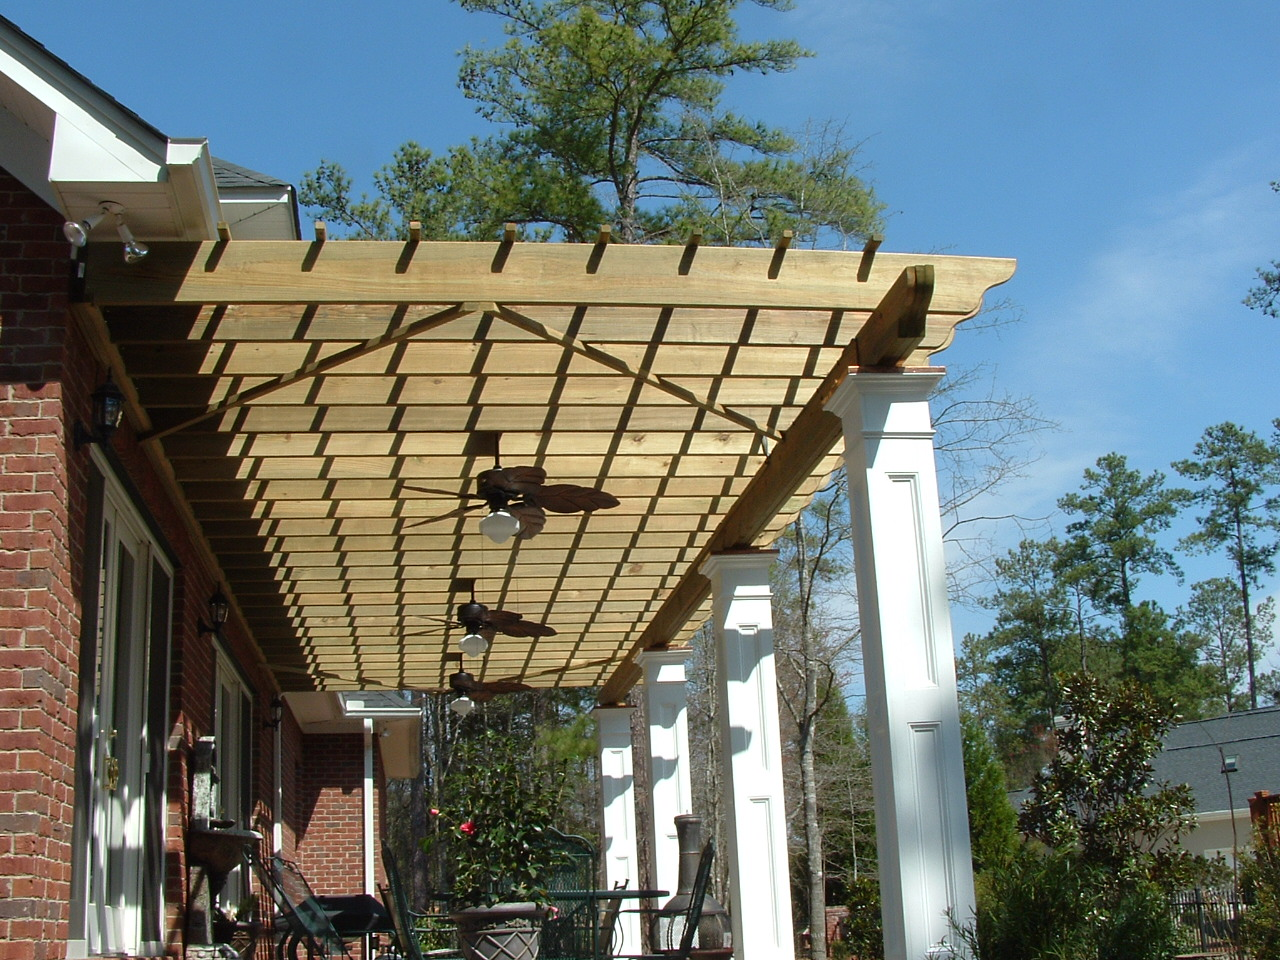 Best Pergola plans with white prop plus ceiling fans and chairs